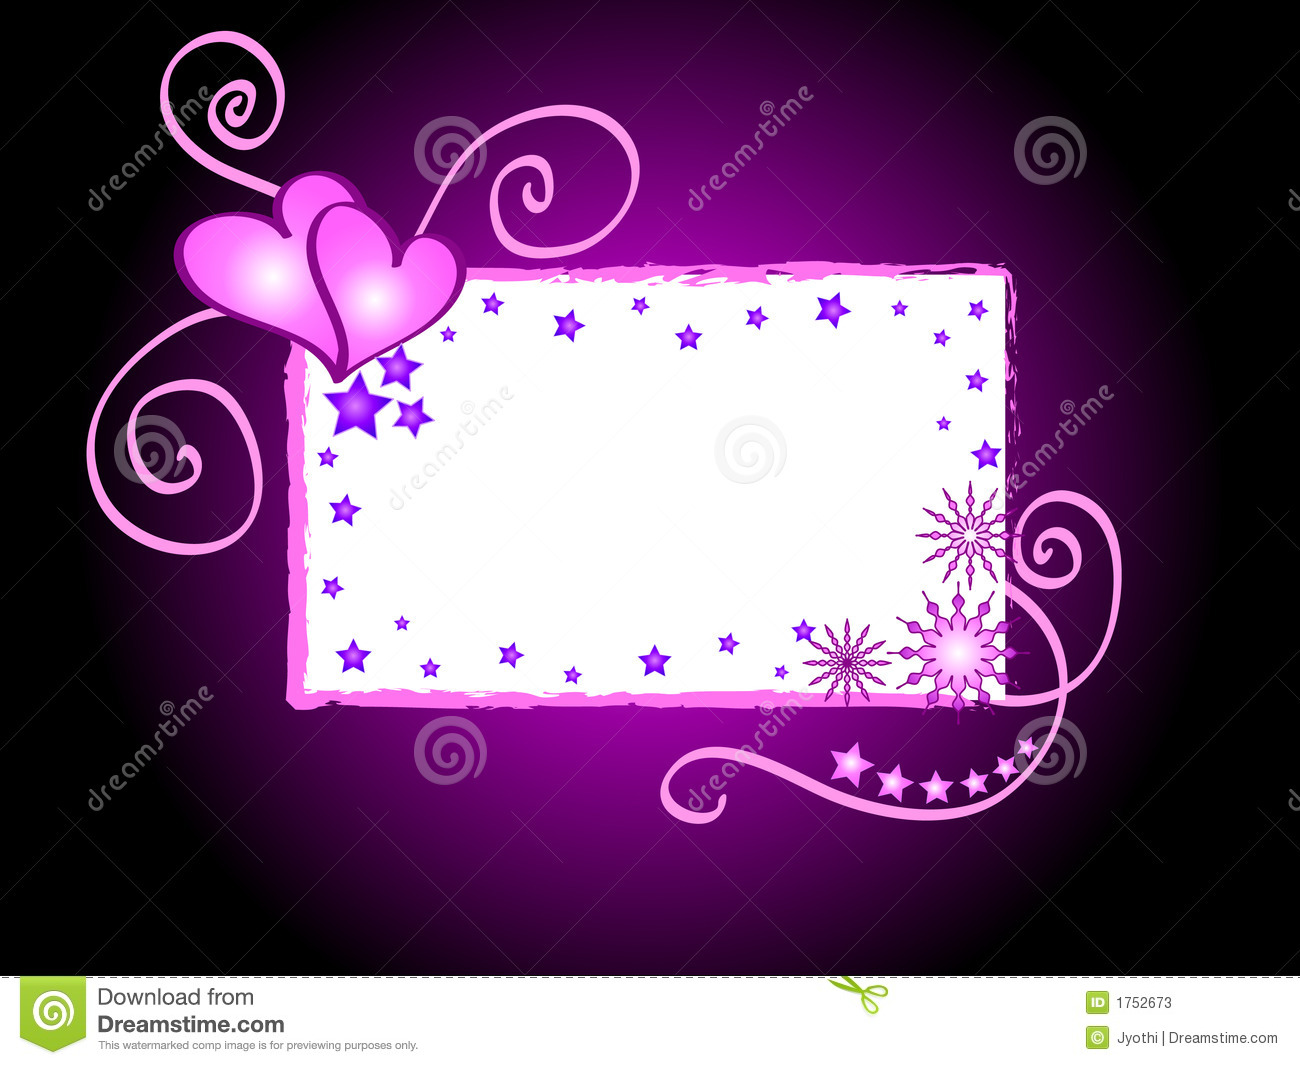 Hearts and stars frame